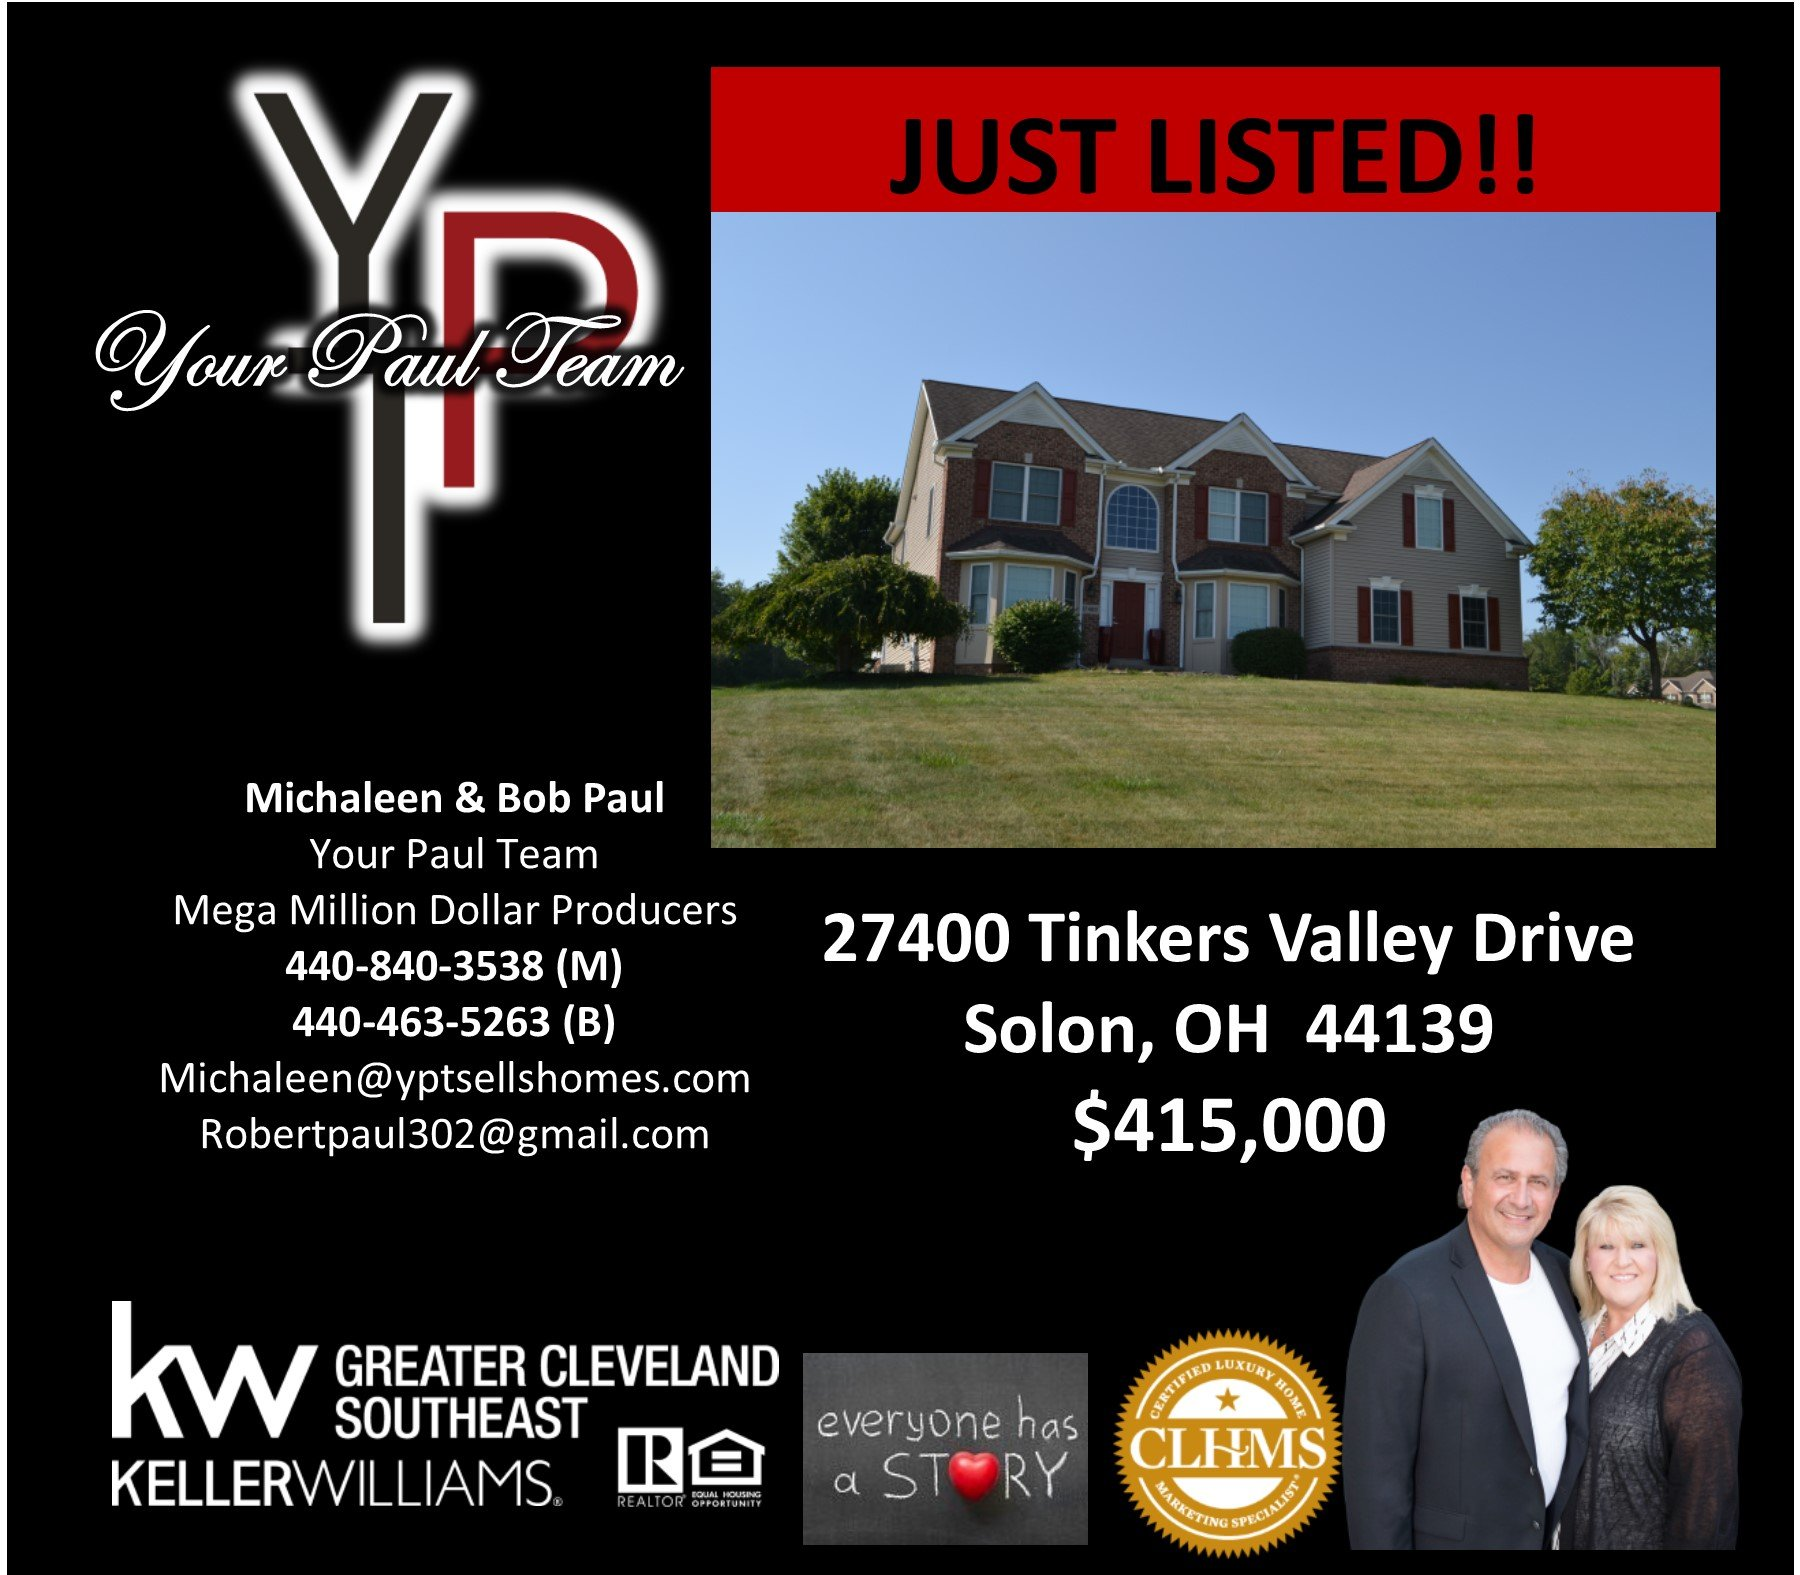 Another Home Listed By Your Paul Team! 27400 Tinkers Valley Drive – Solon